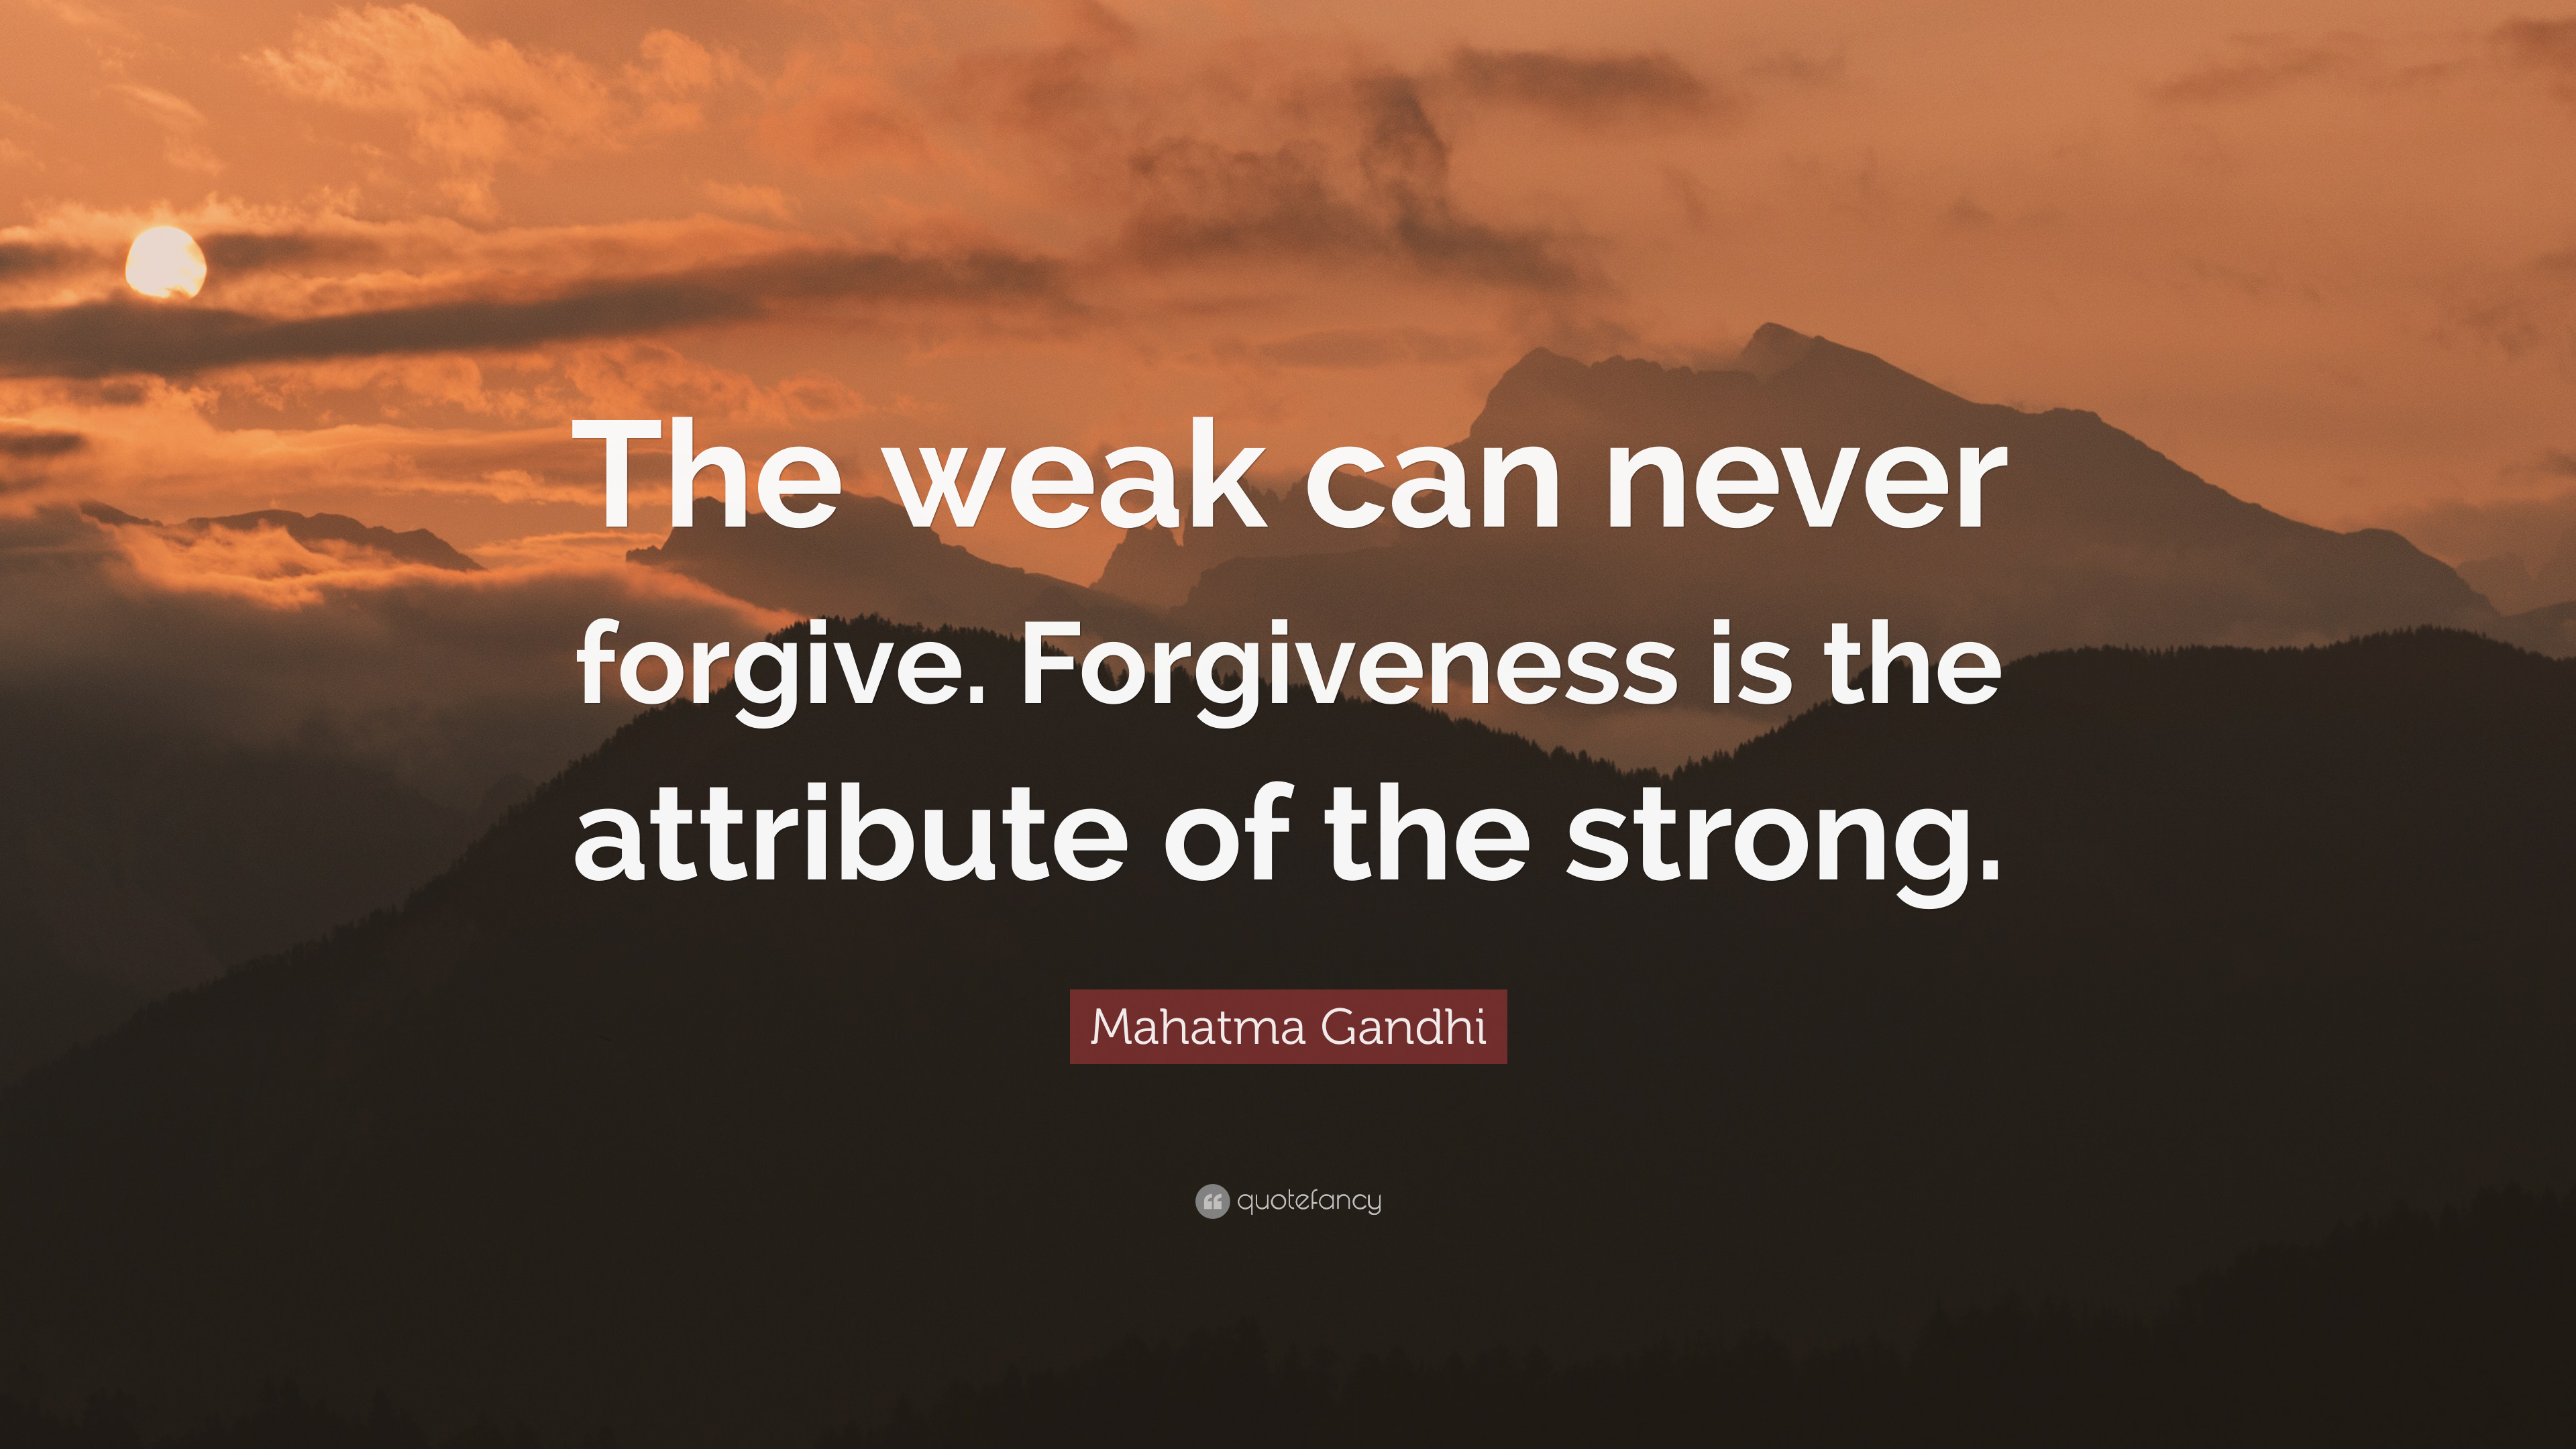 Quotes About Landscape Forgiveness Quotes 40 Wallpapers  Quotefancy